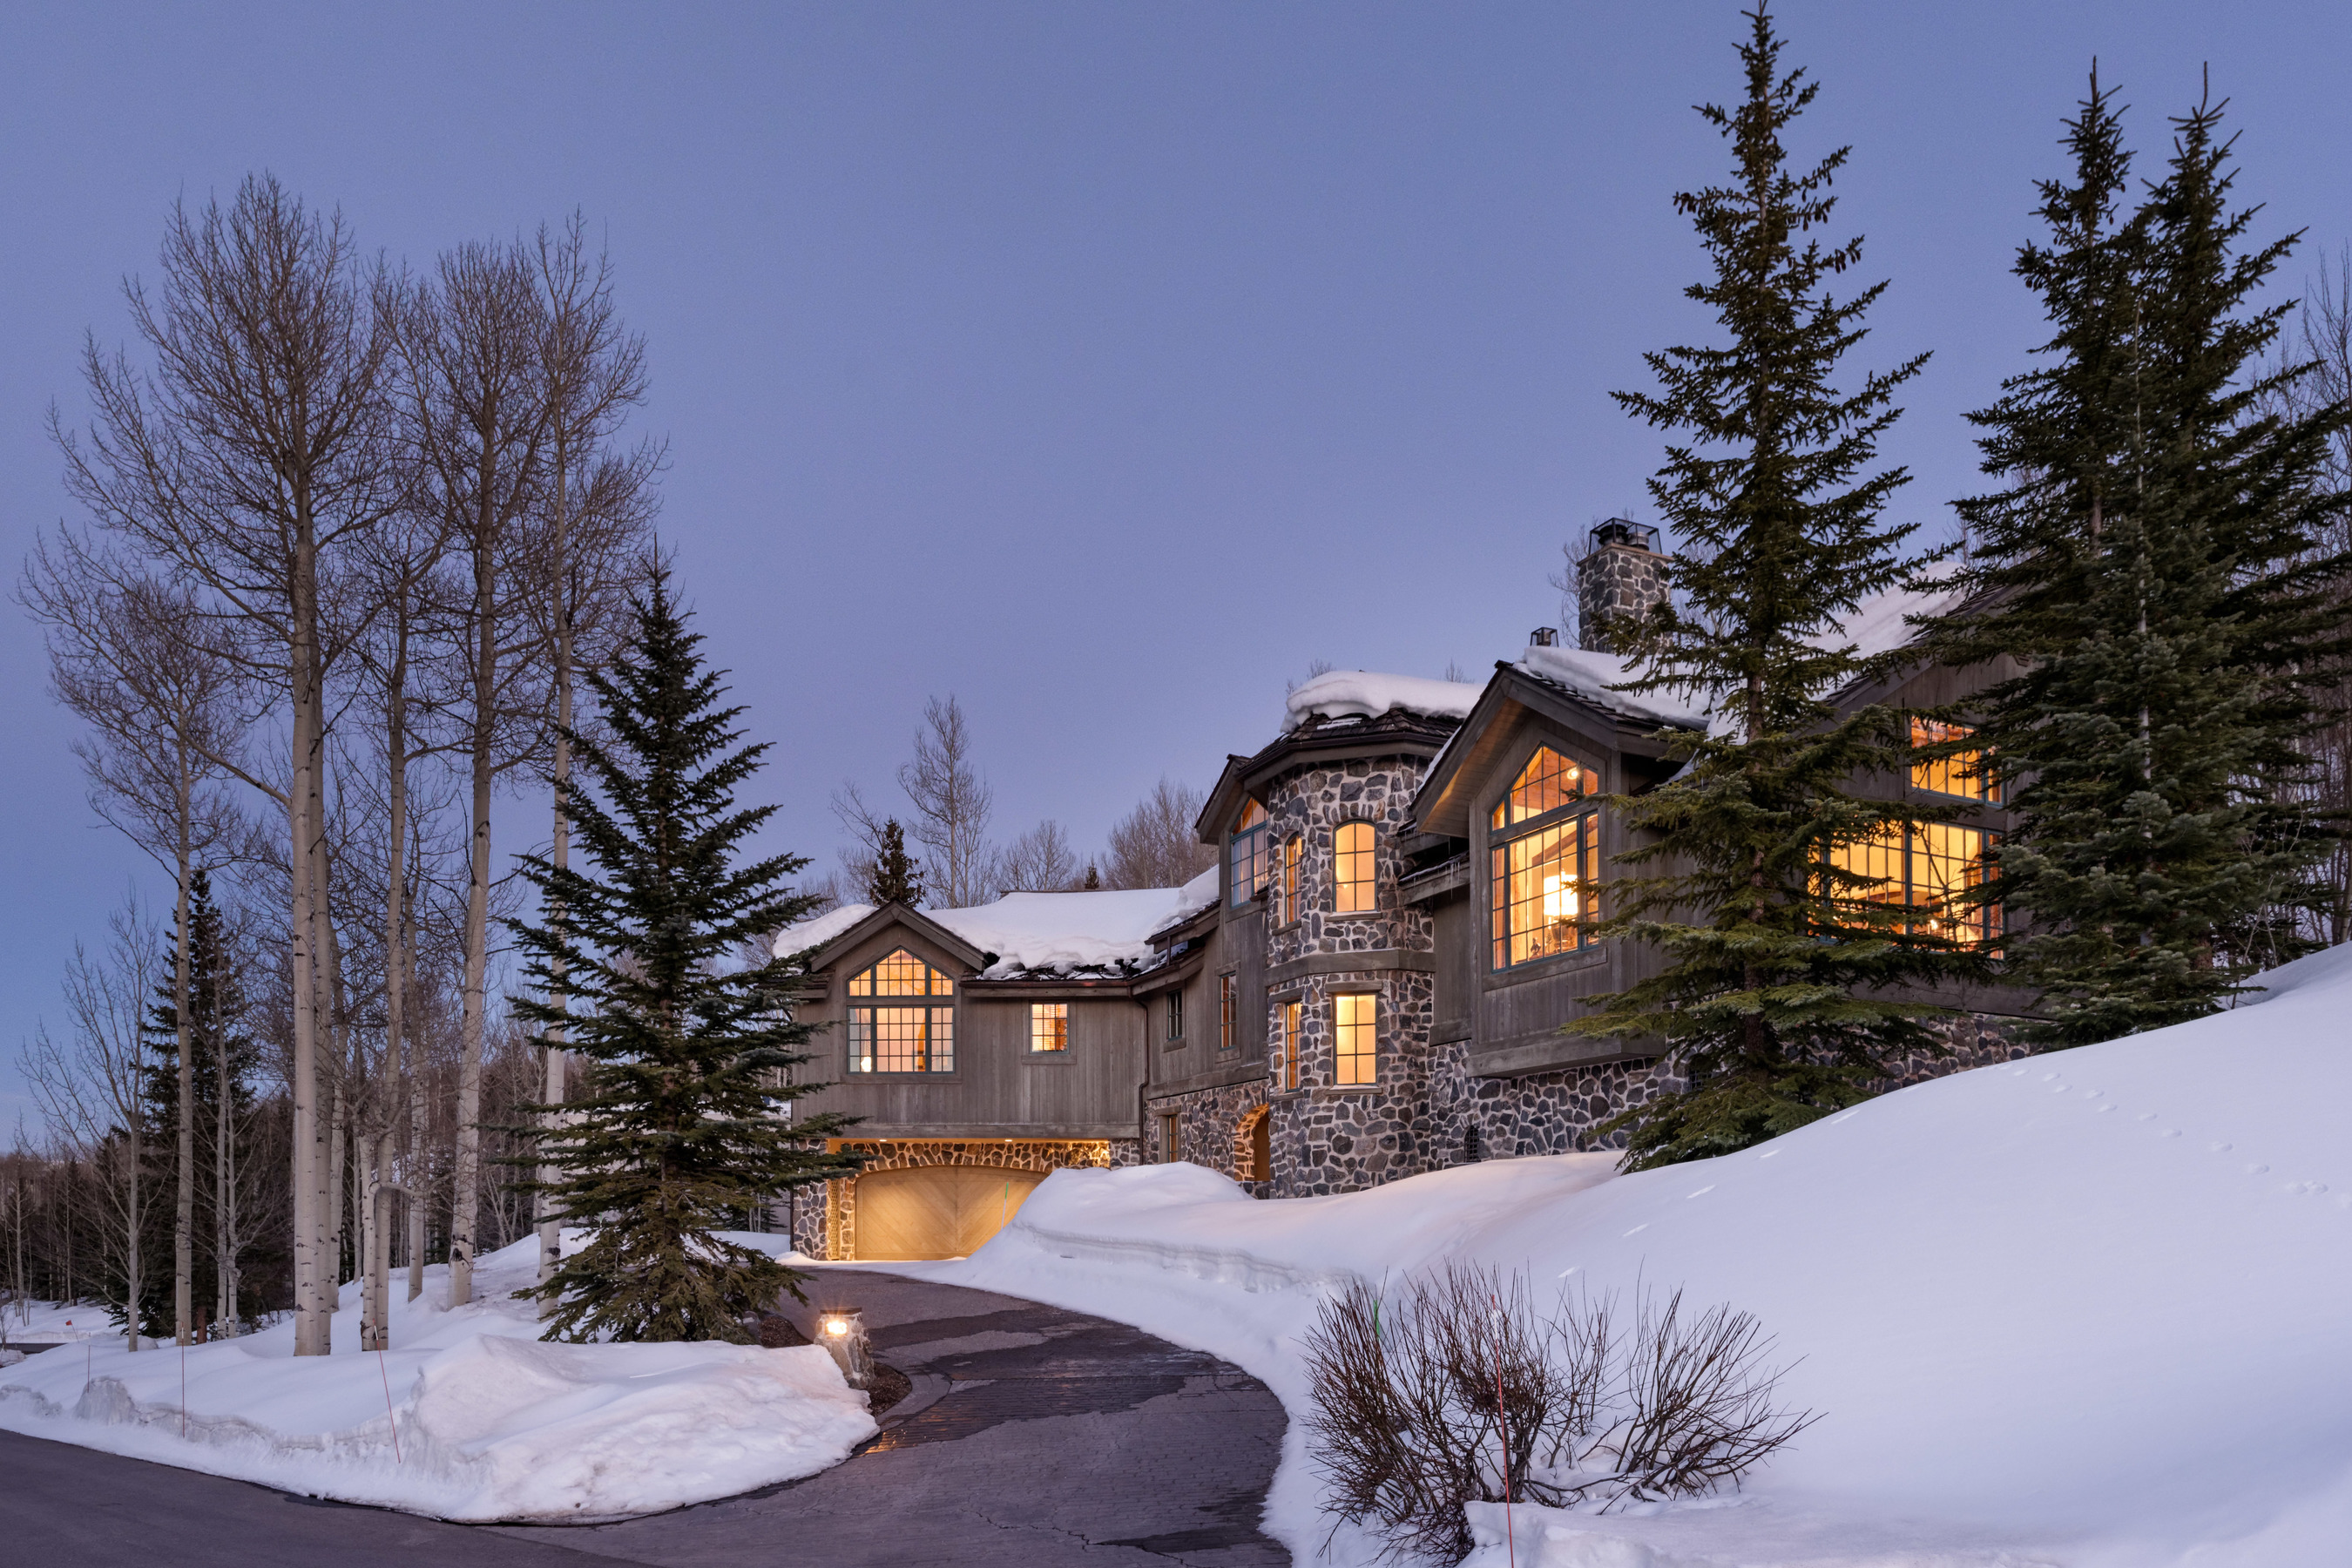 Casa Unifamiliar por un Venta en In The Divide 143 Aspen Way Snowmass Village, Colorado, 81615 Estados Unidos